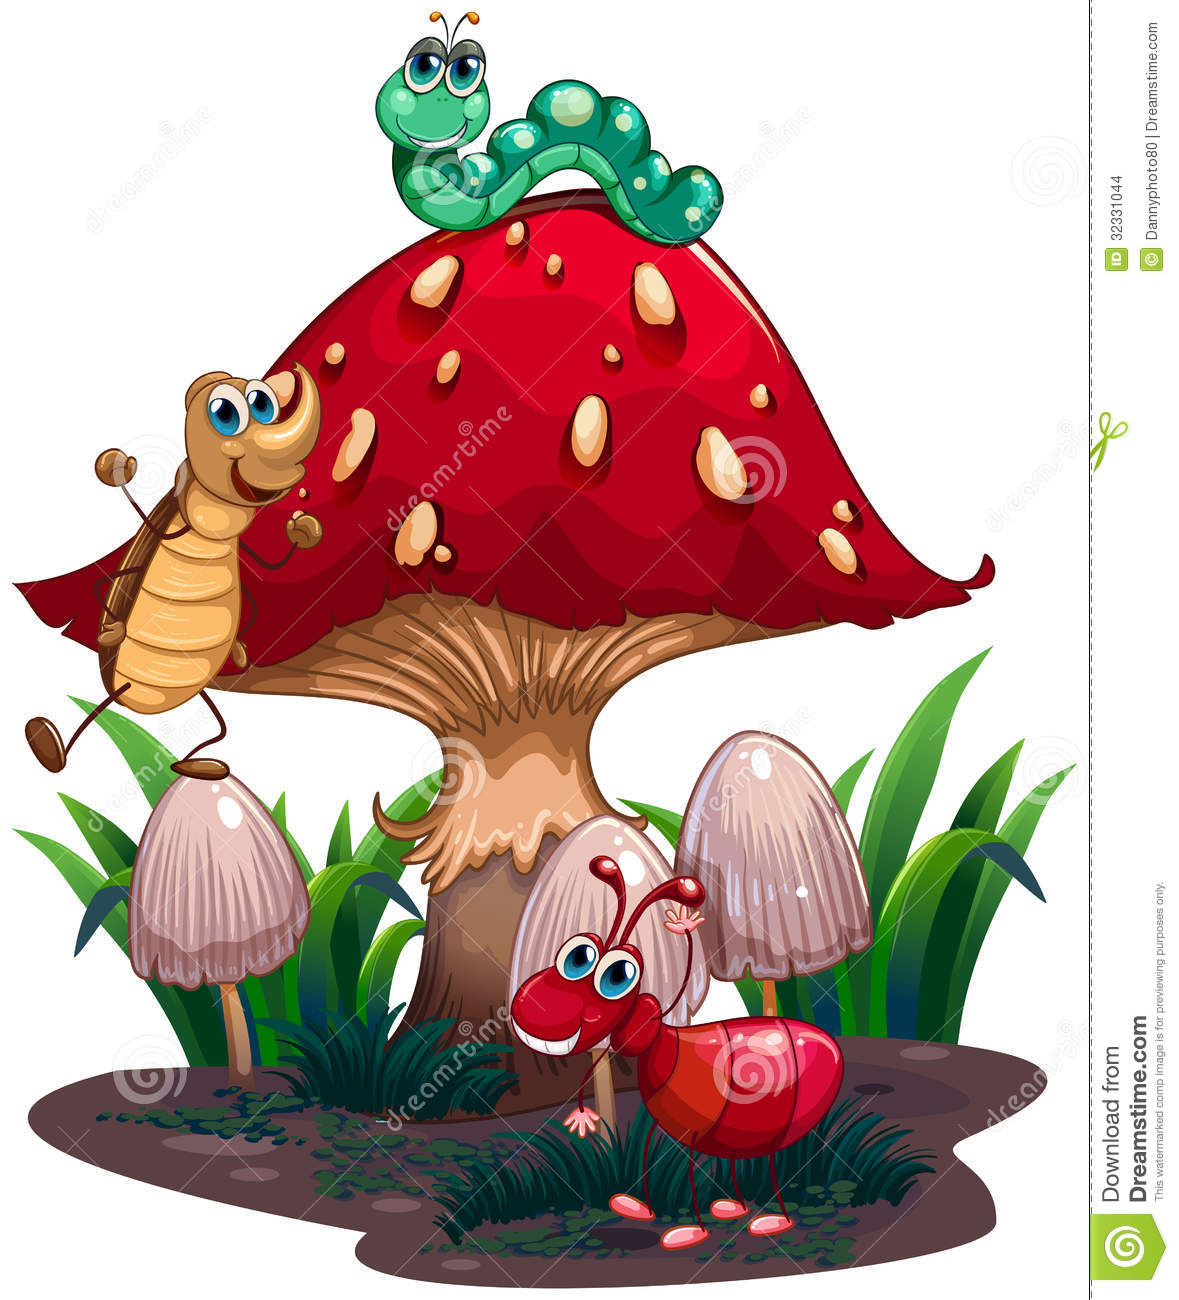 Toriko Surrounded By Bugs Jpg: A Mushroom Surrounded With Different Insects Stock Vector